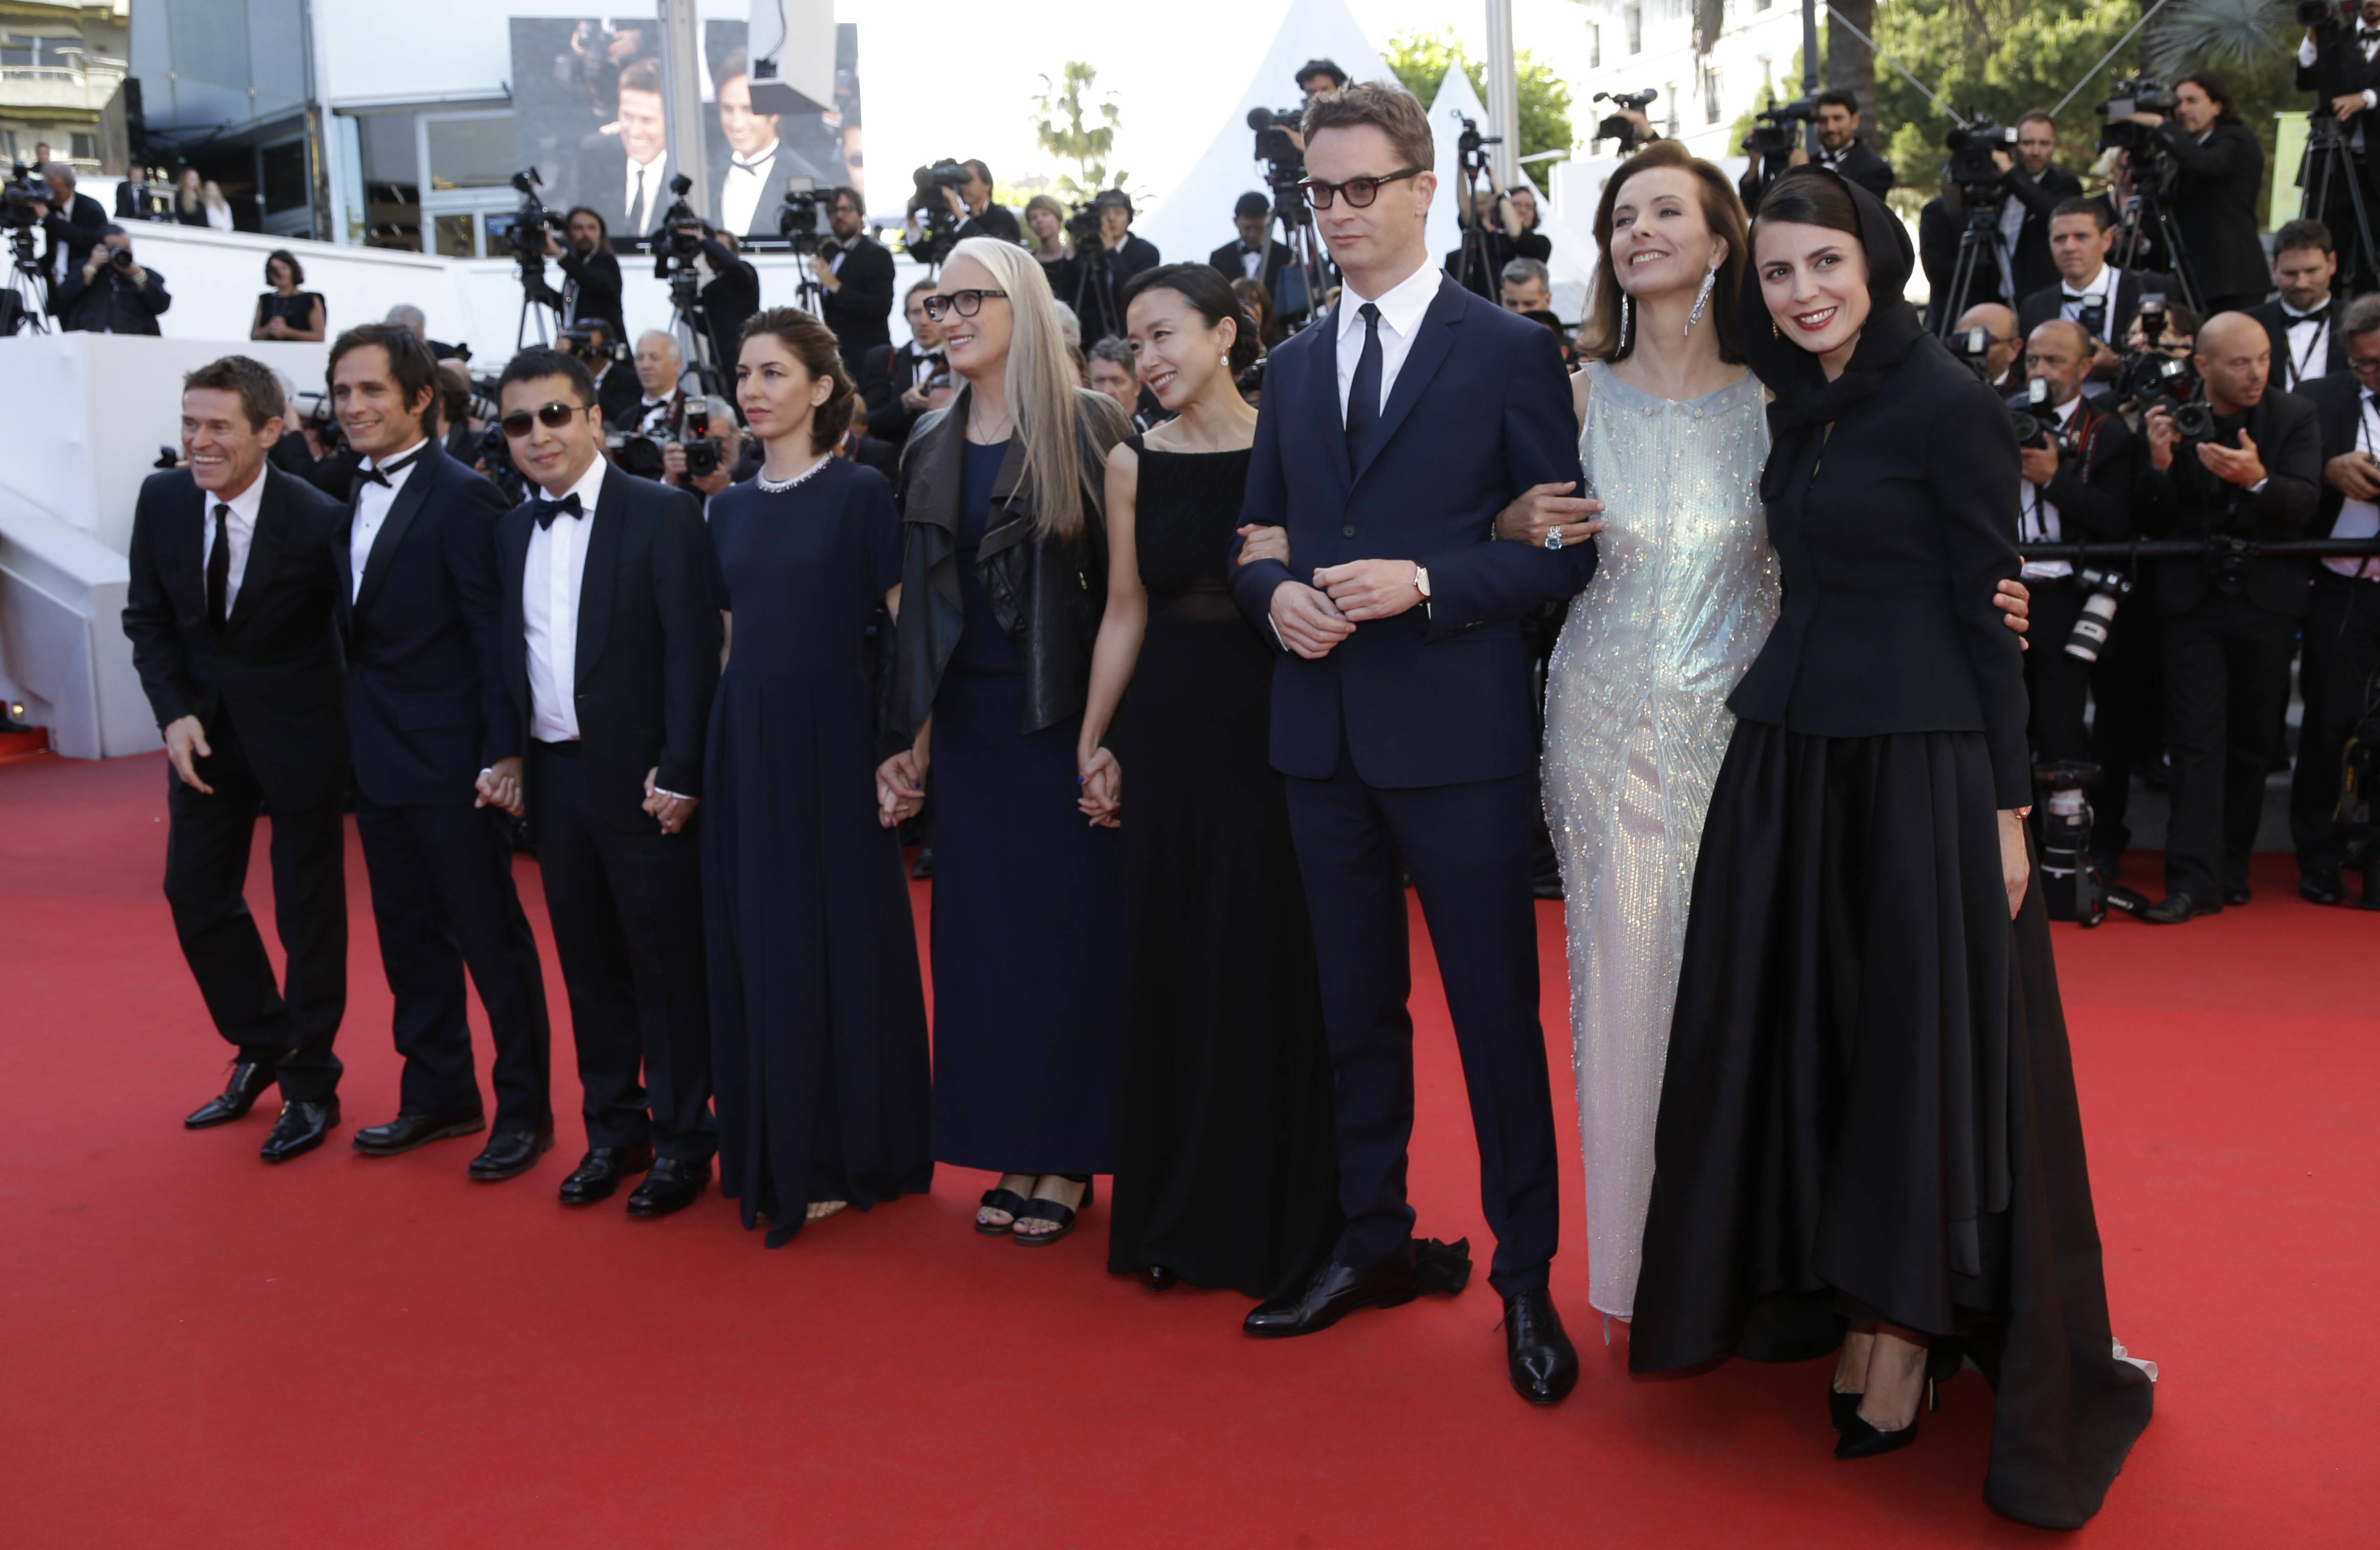 From left, jury members, Willem Dafoe, Gael Garcia Bernal, Jia Zhangke, Sofia Coppola, president of the jury Jane Campion, Jeon Do-yeon, Nicolas Winding Refn, Carole Bouquet and Leila Hatami arrive Saturday for the awards ceremony at the 67th international film festival, Cannes, southern France.